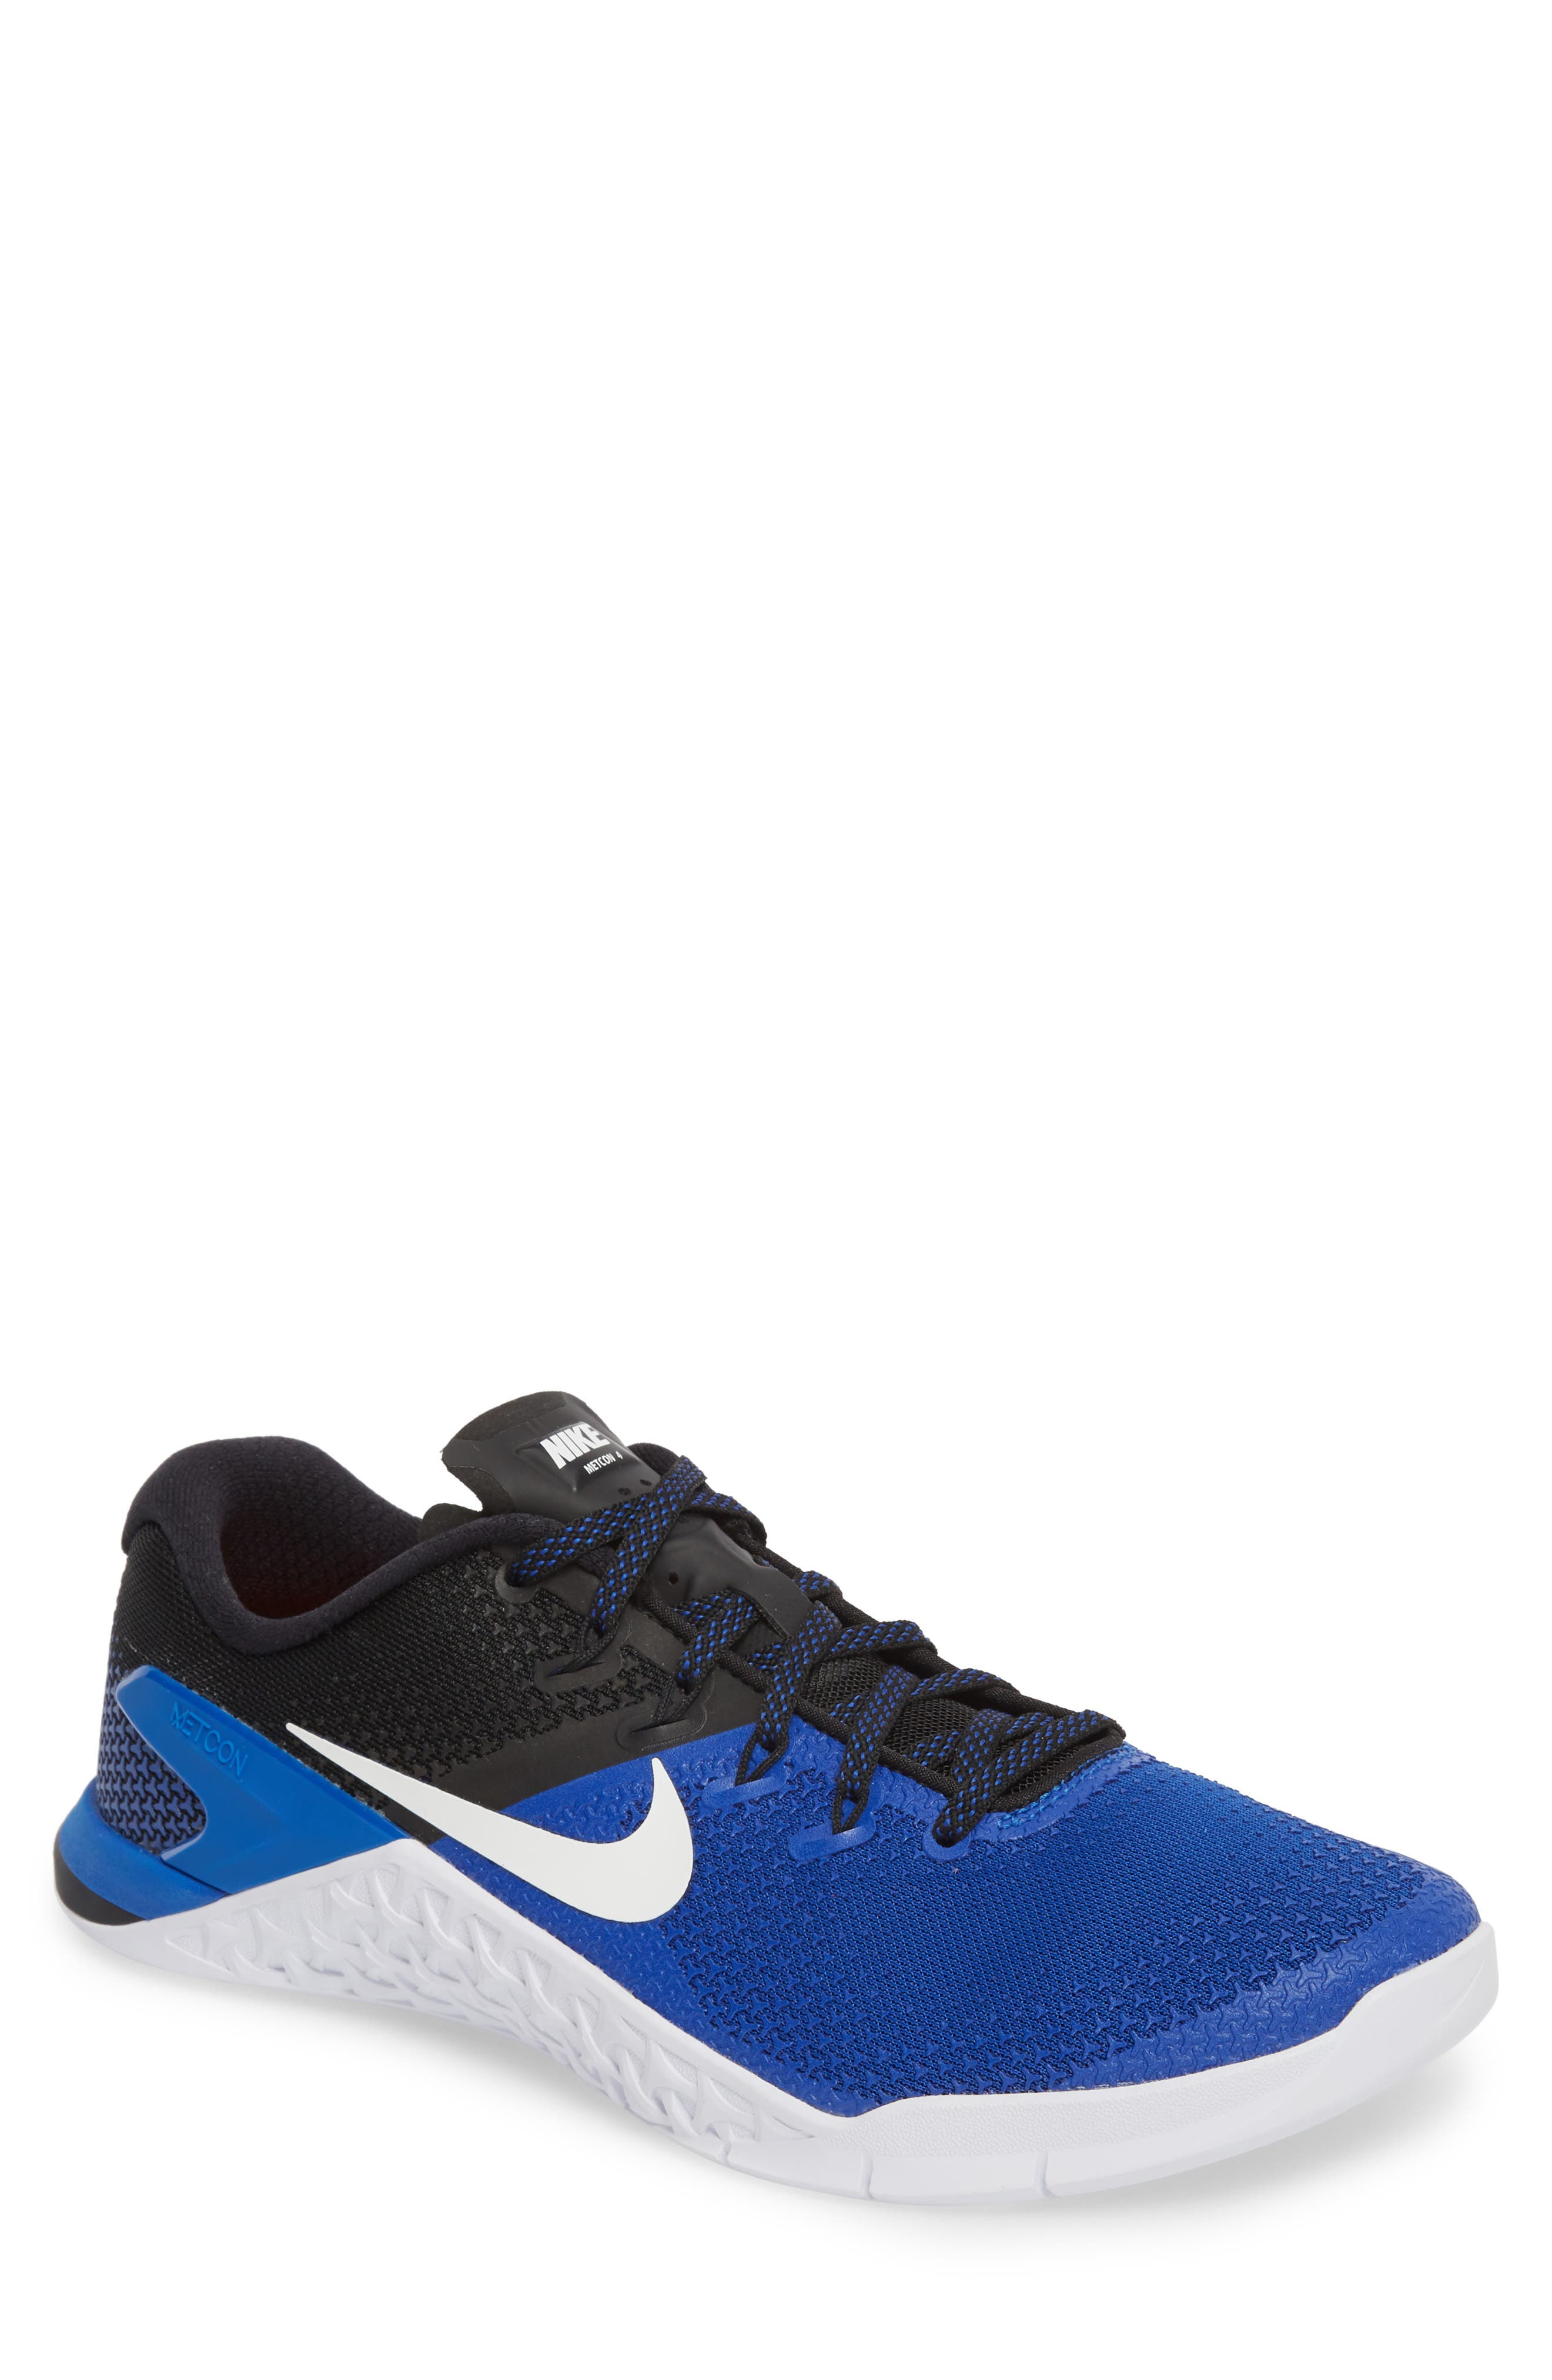 Metcon 4 Training Shoe,                             Main thumbnail 1, color,                             410